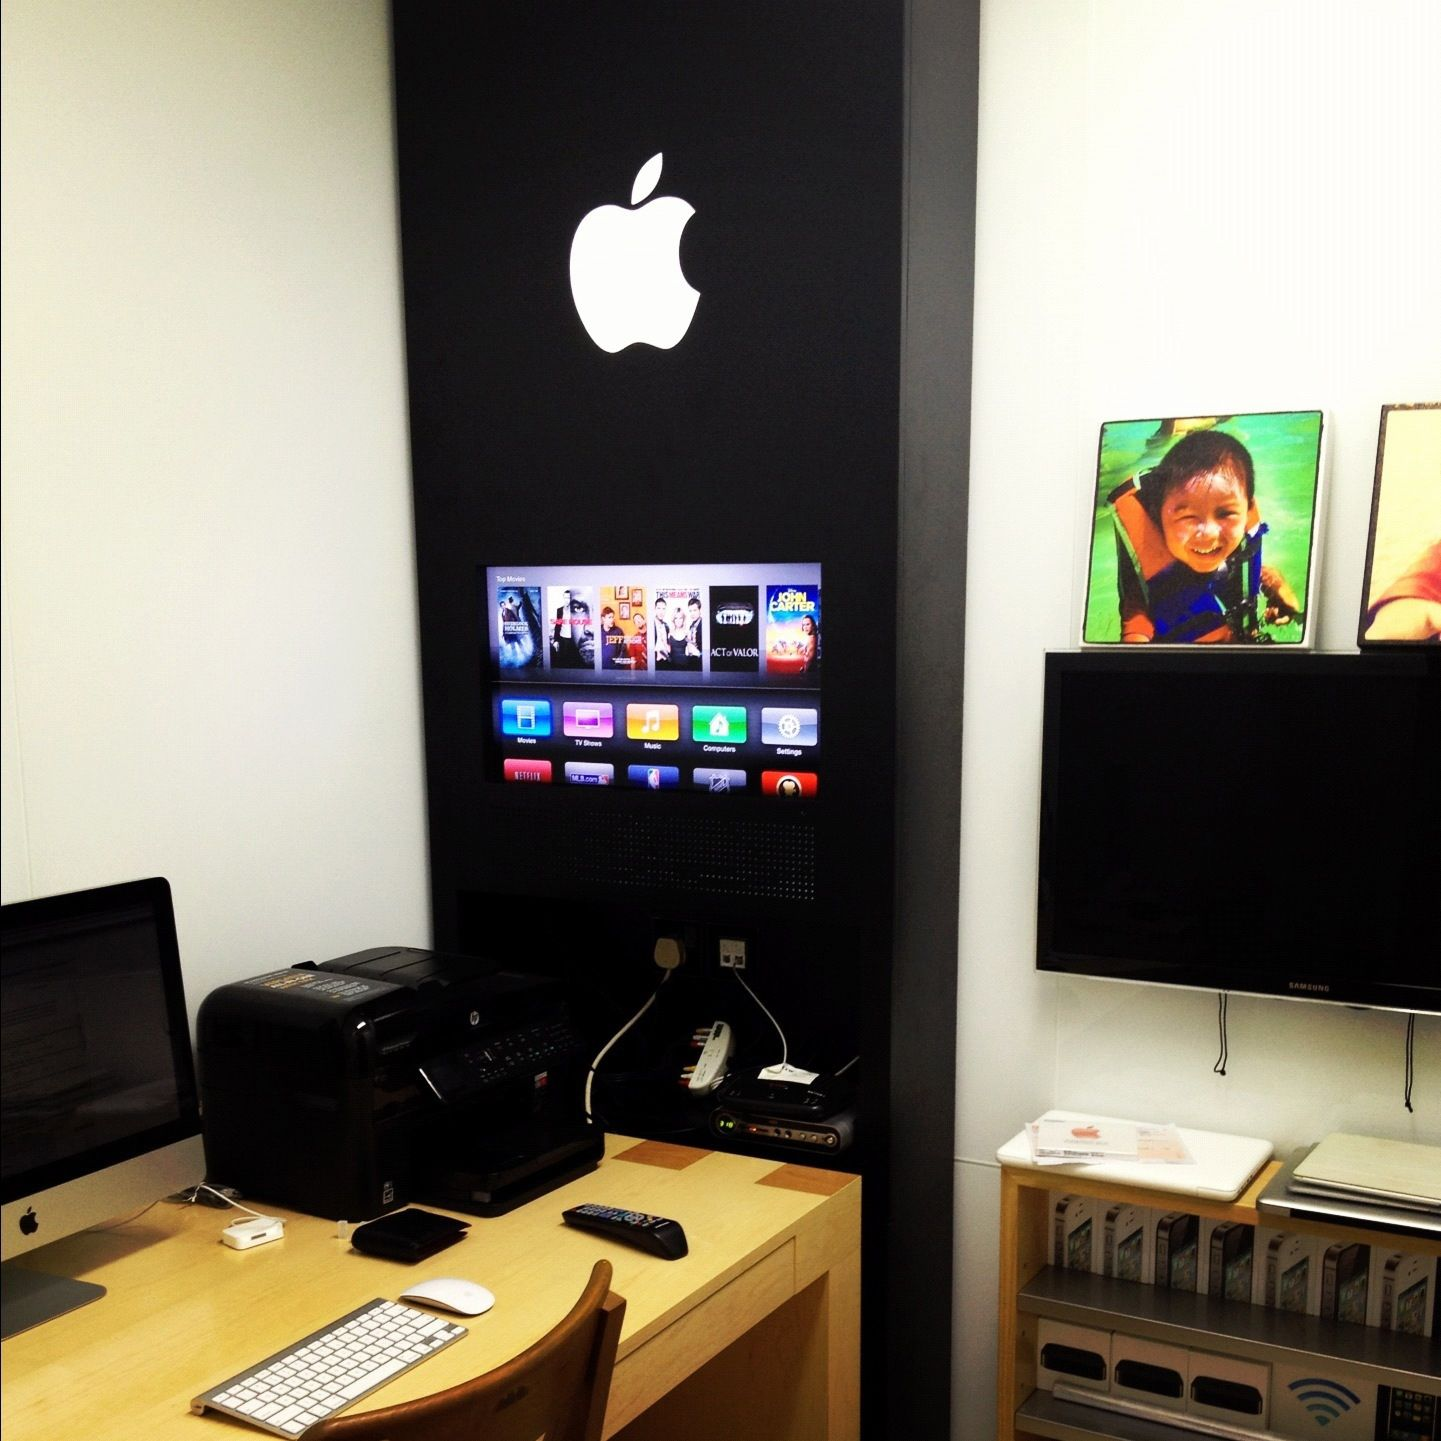 An Insane Apple Store Inspired Home Office Design | Office designs ...